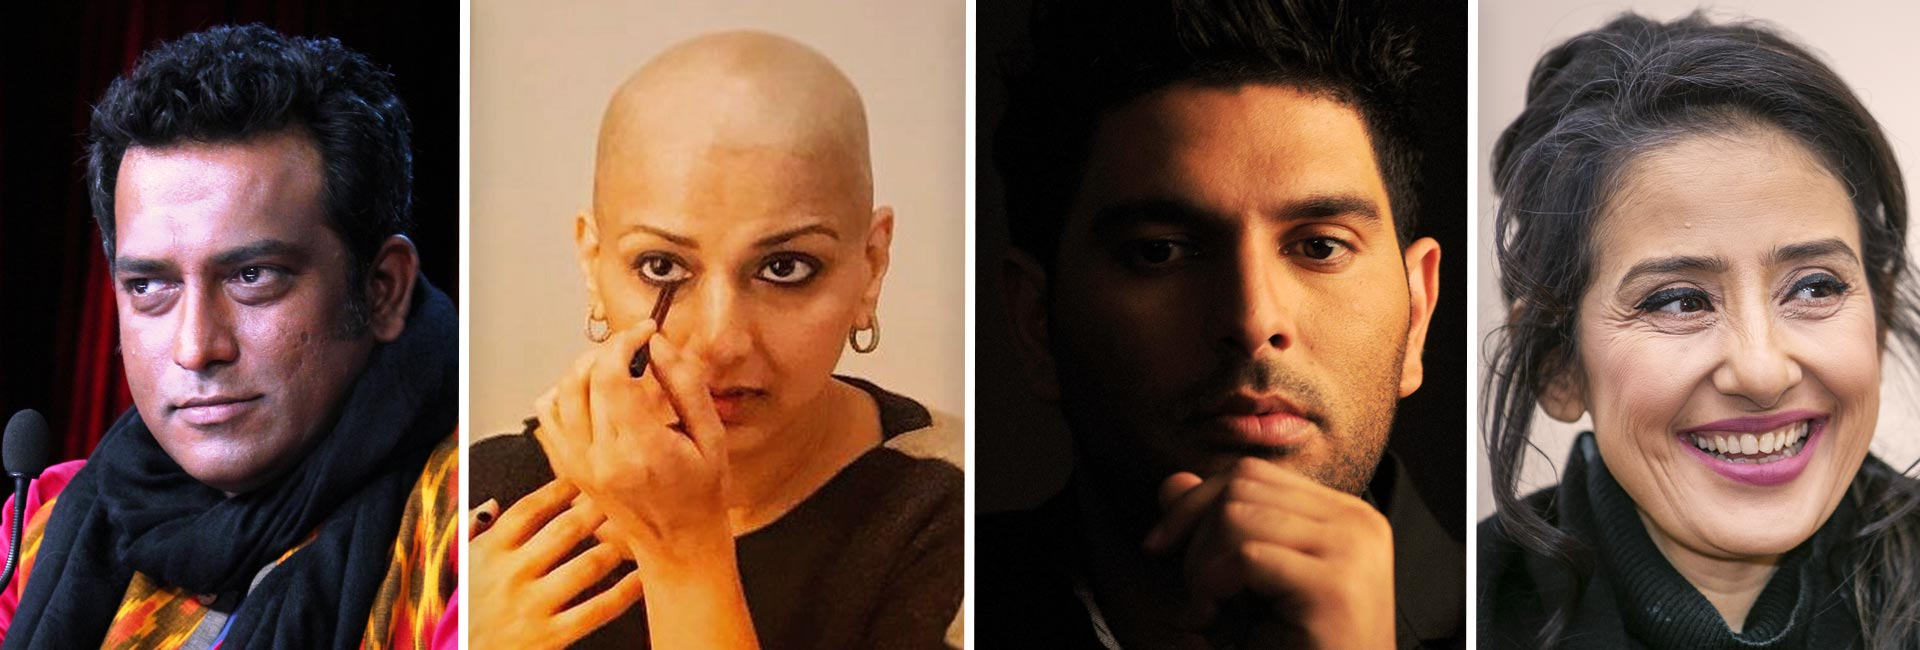 #WorldCancerDay: Inspiring Celebrity Cancer Survivors